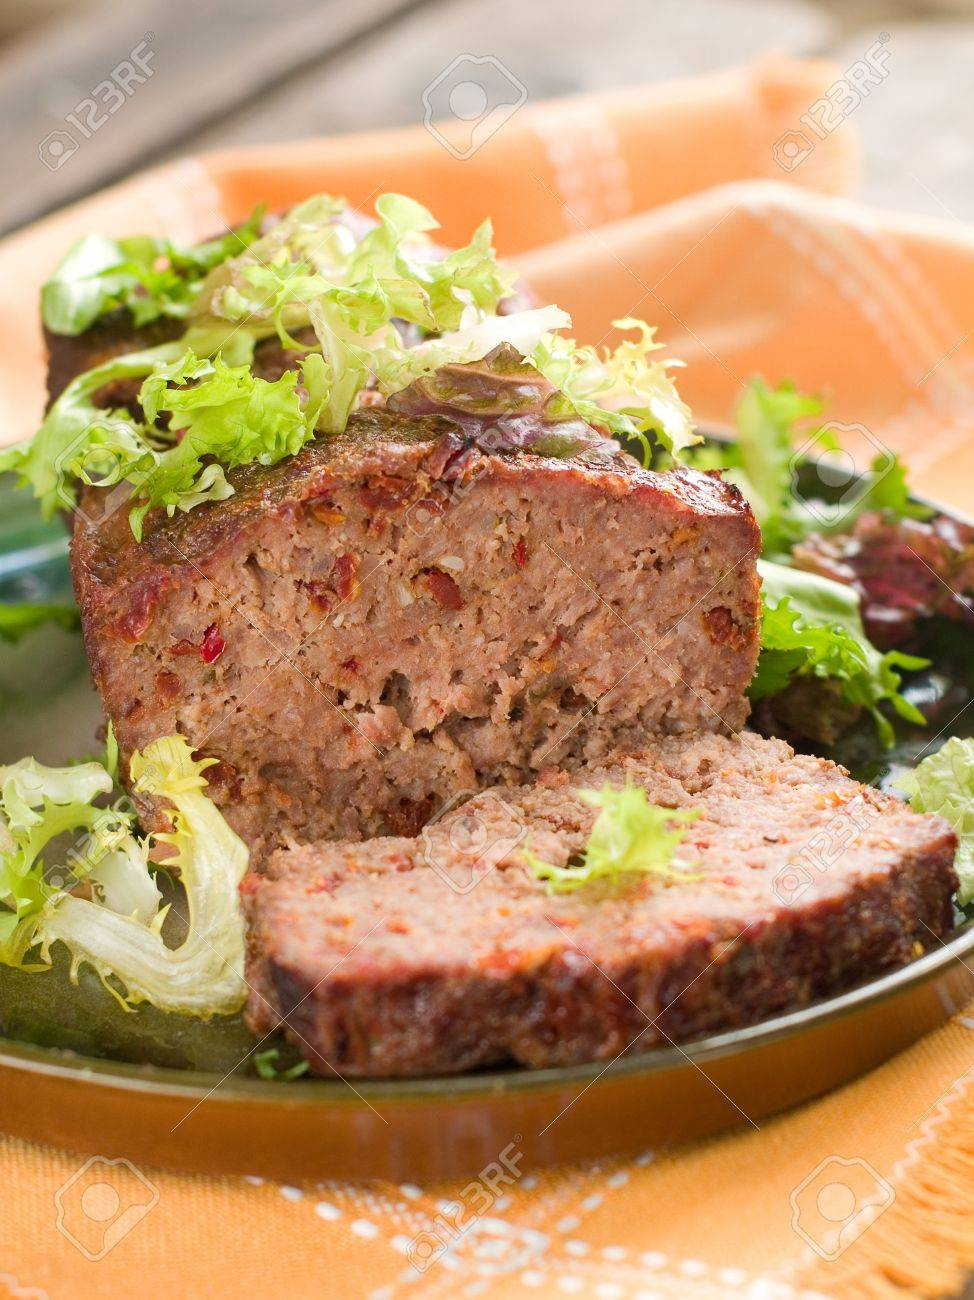 Meatloaf with spice for dinner, selective focus Stock Photo - 17379055